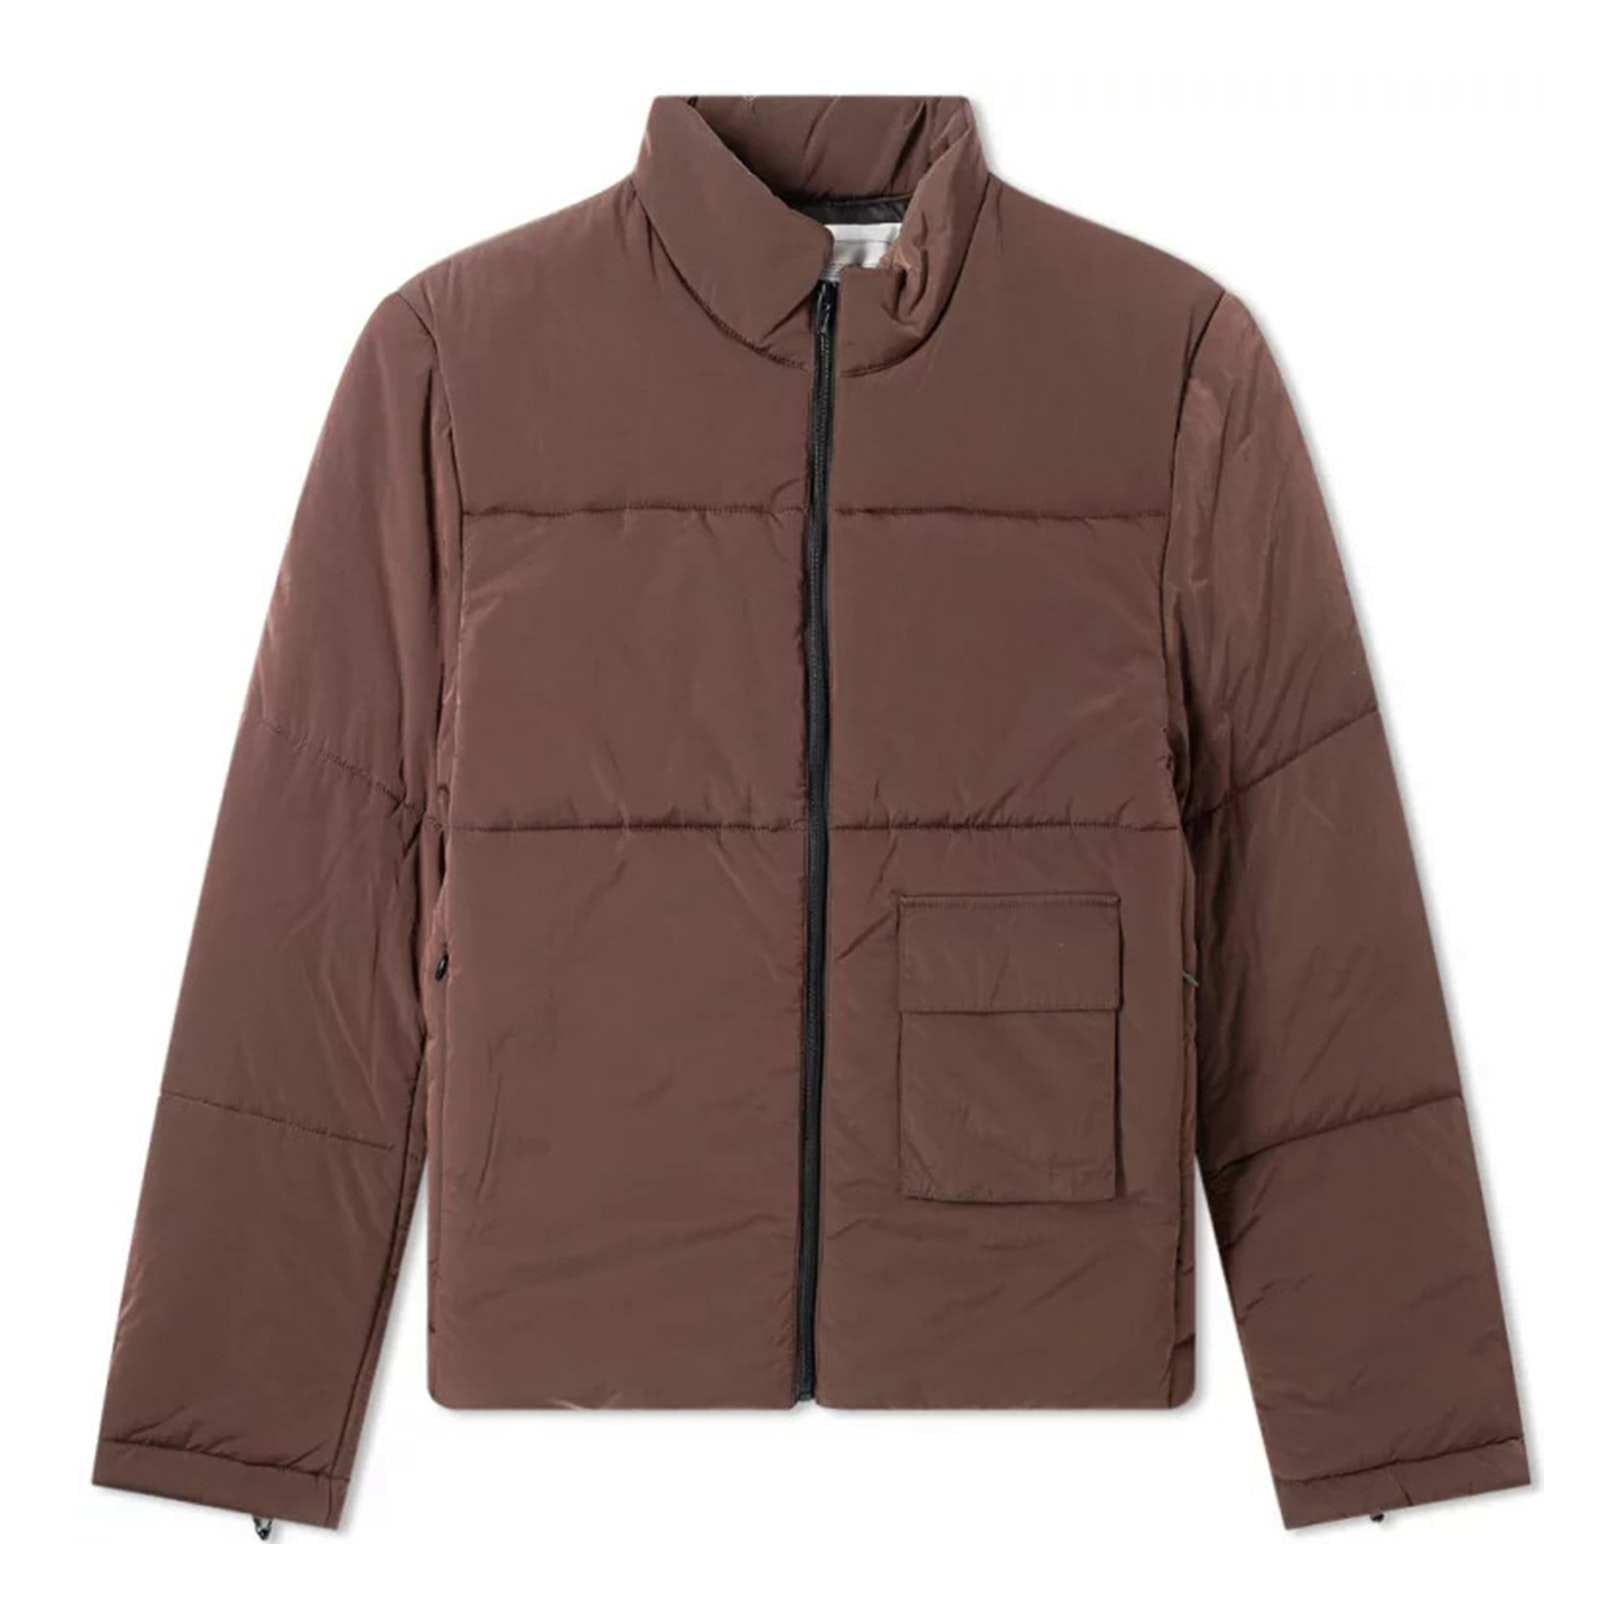 OakleyBrownPufferJacketEndClothingONE37pm